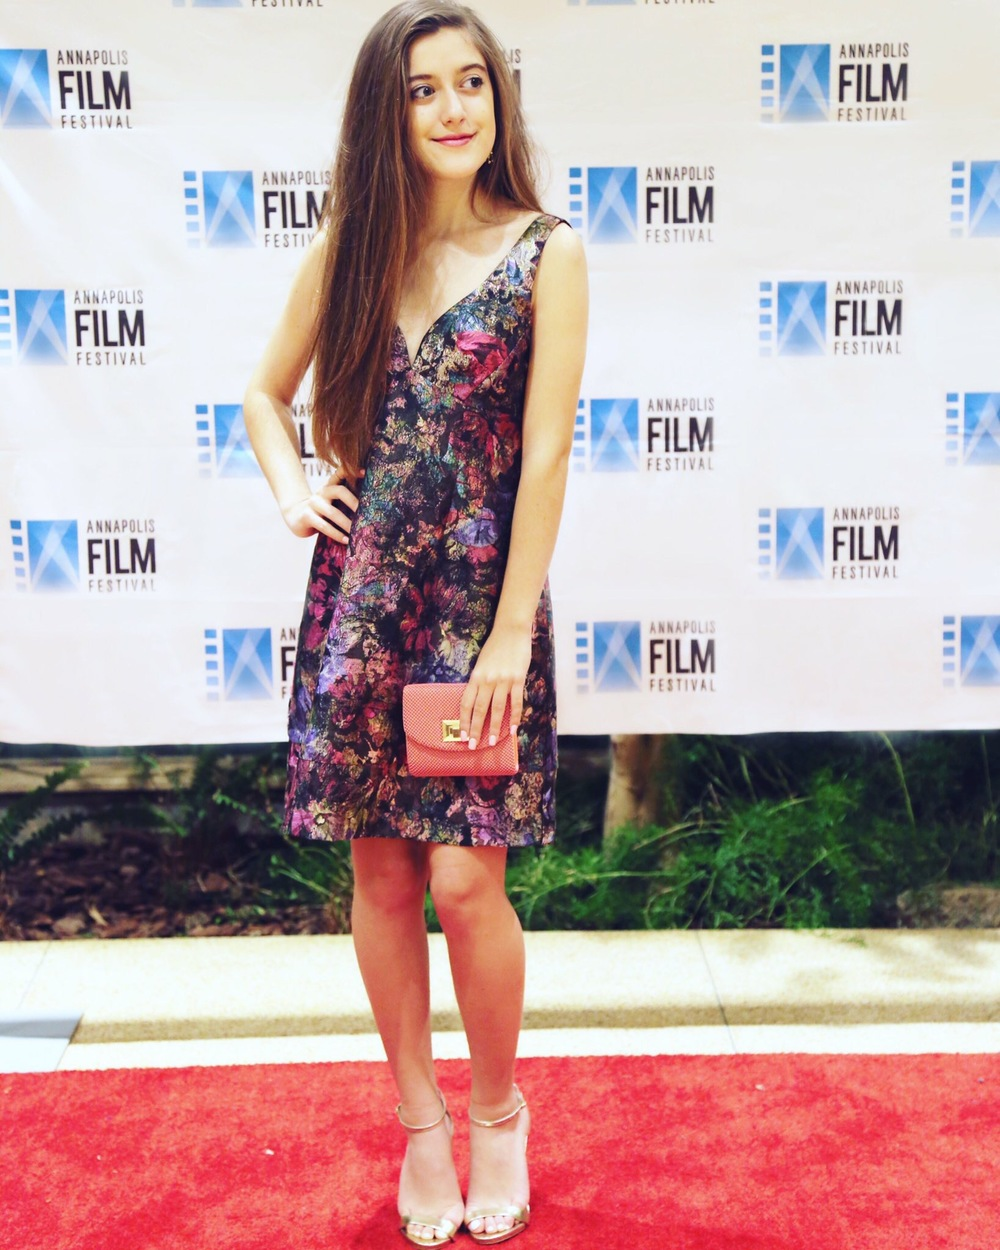 """Karlee Roberts attends the sold out screening of her film at the   Annapolis Film Festival  & speaks on their """"Young Hollywood Panel""""."""